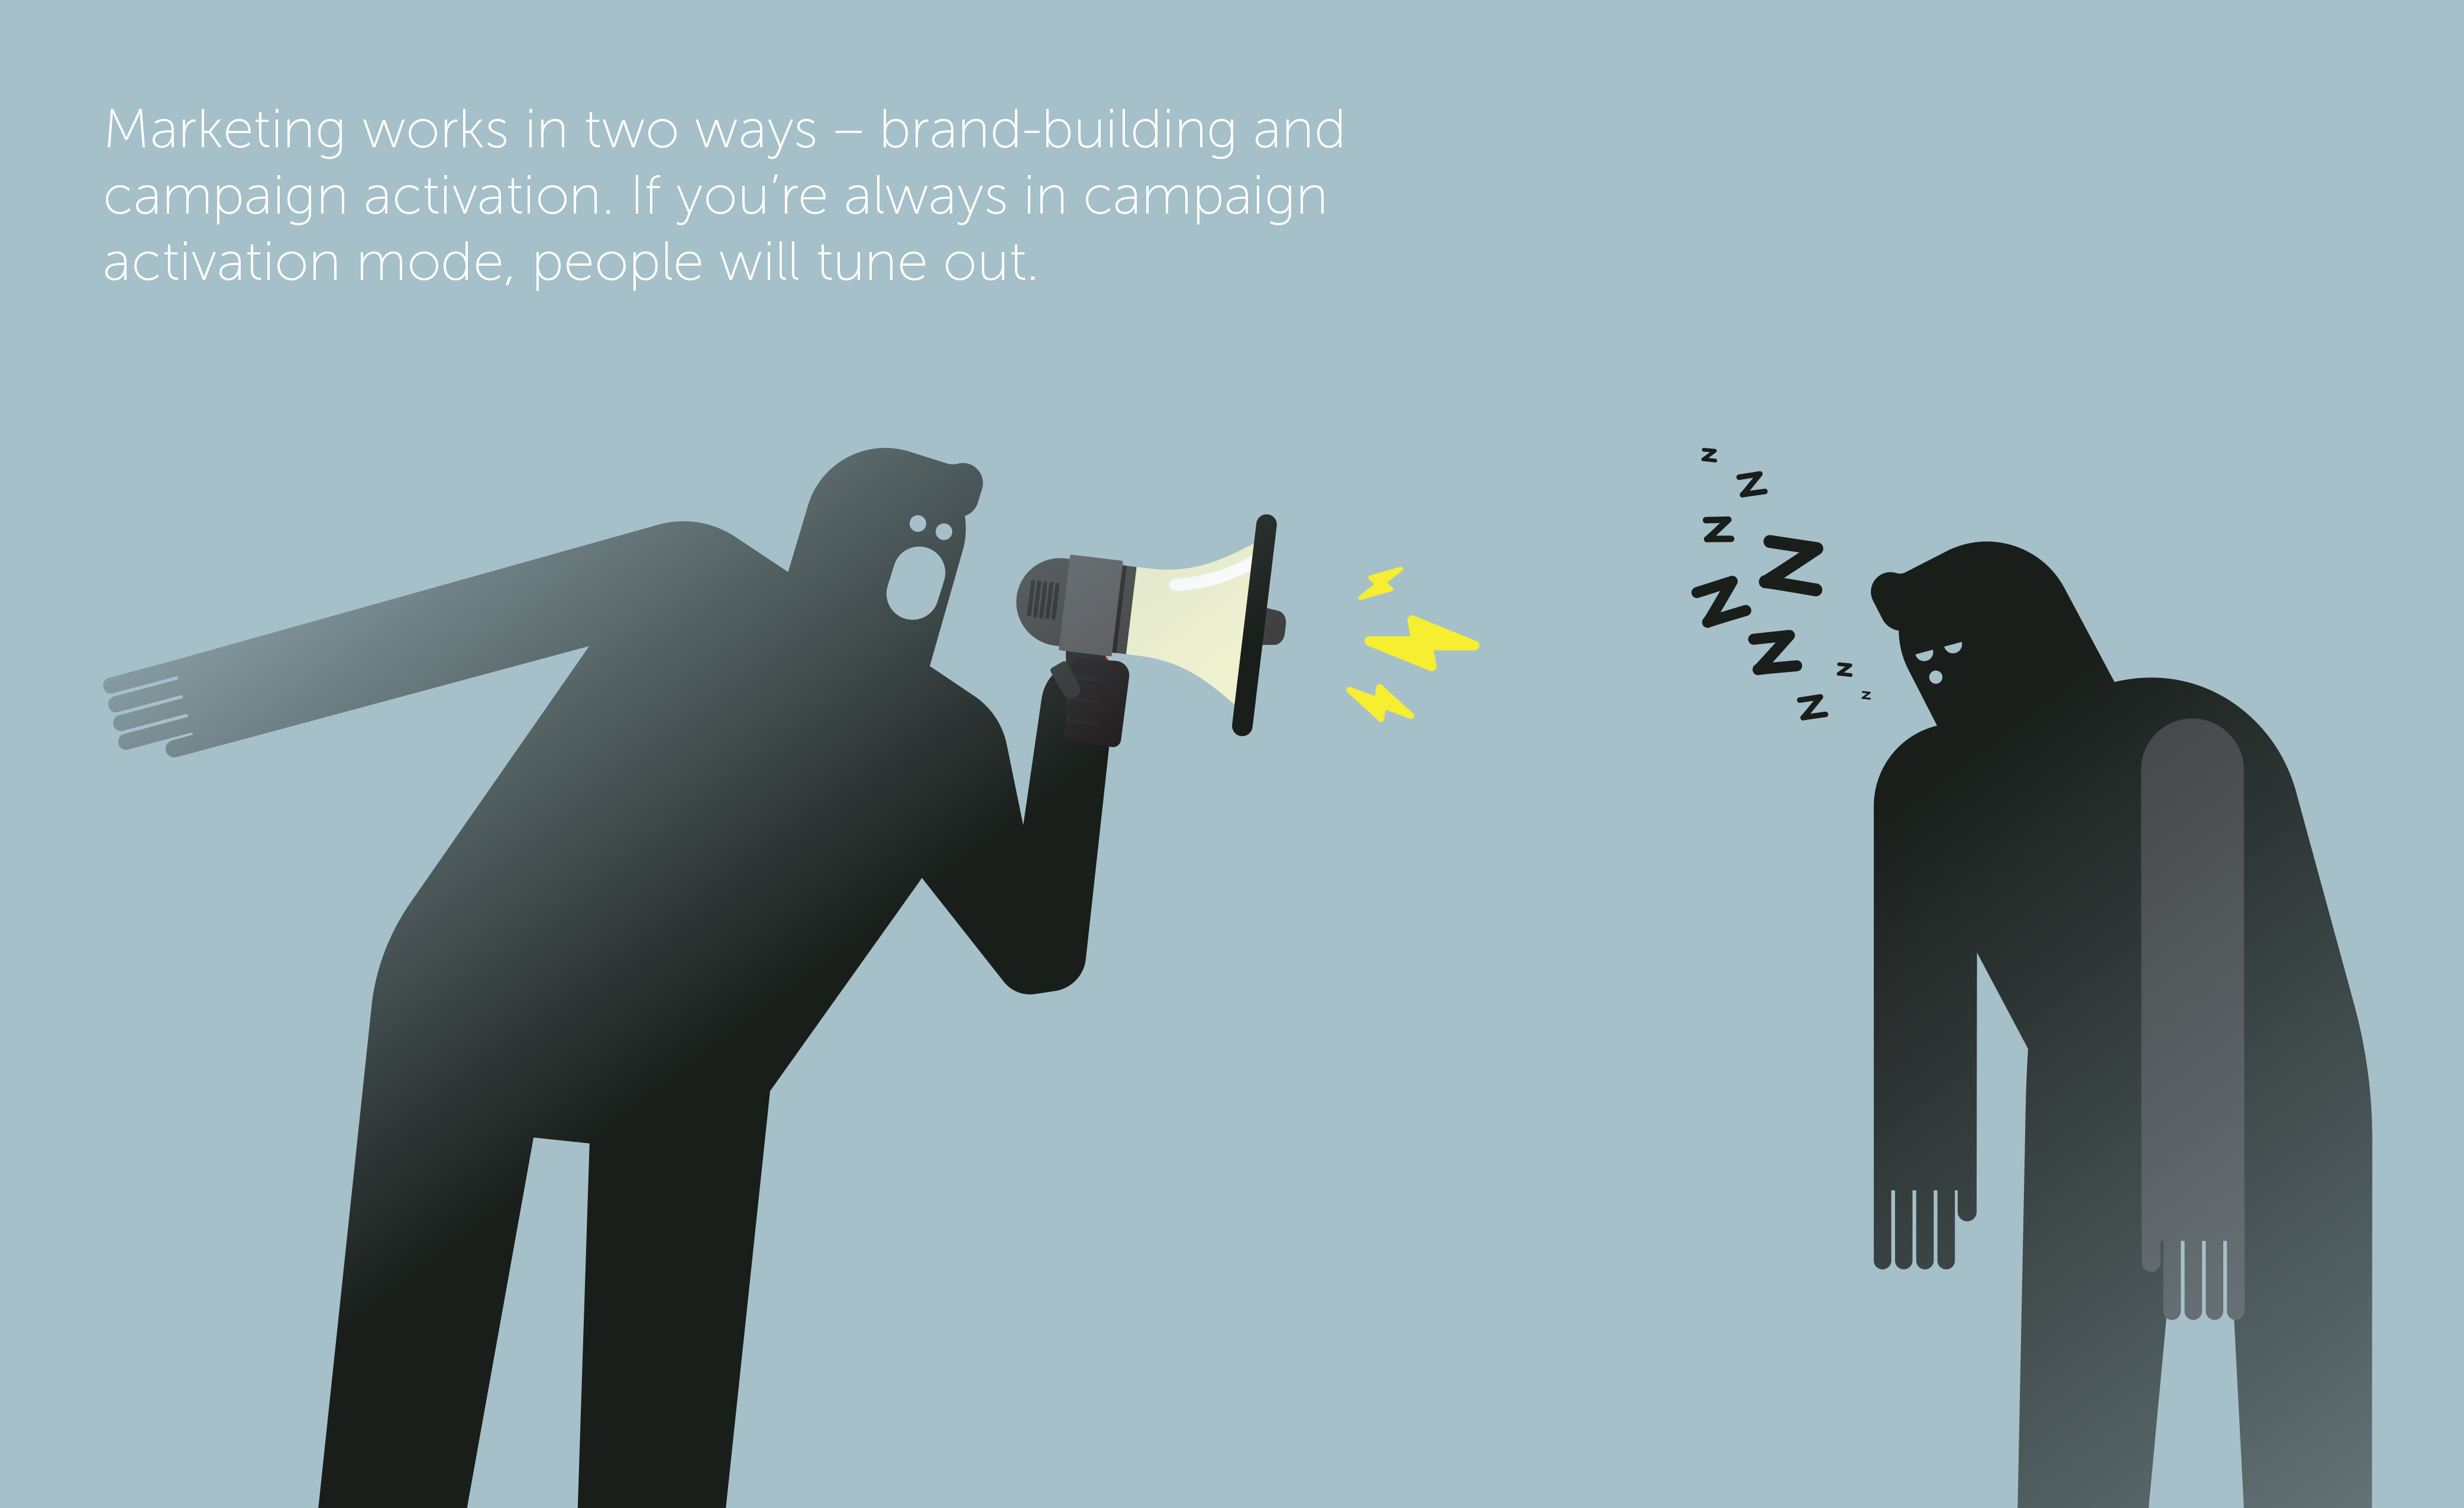 media consumption trends show us that marketing works in two ways.